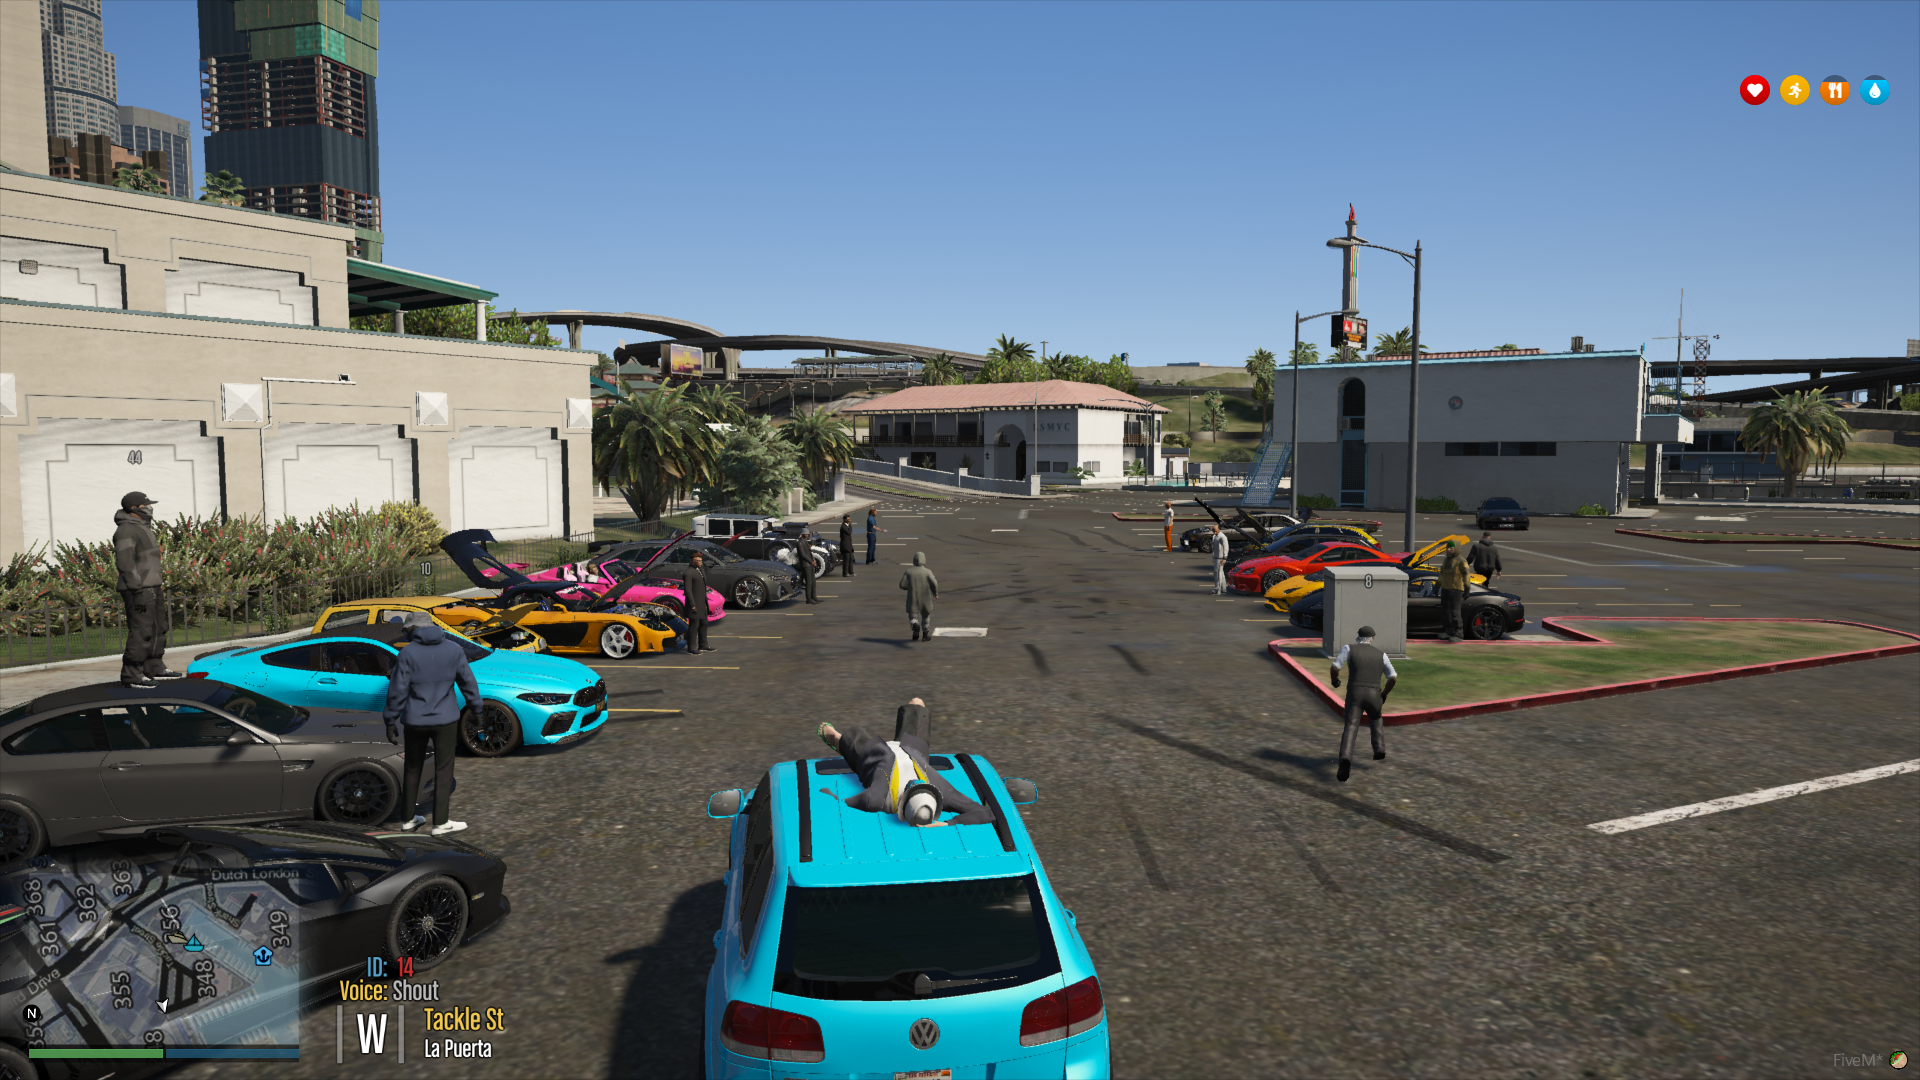 Car meet at the docks